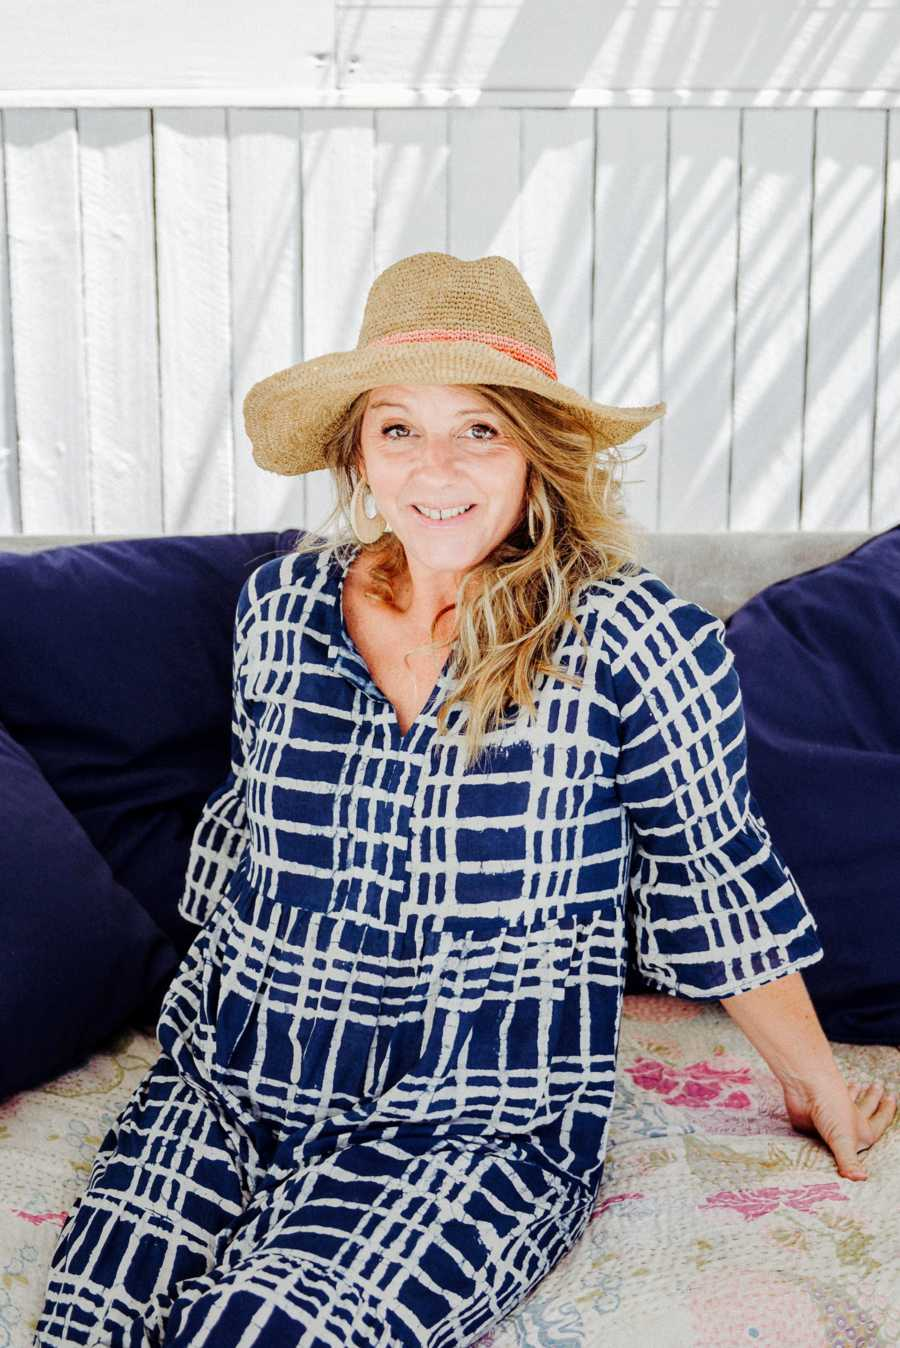 Woman wearing sunhat sitting on couch outside